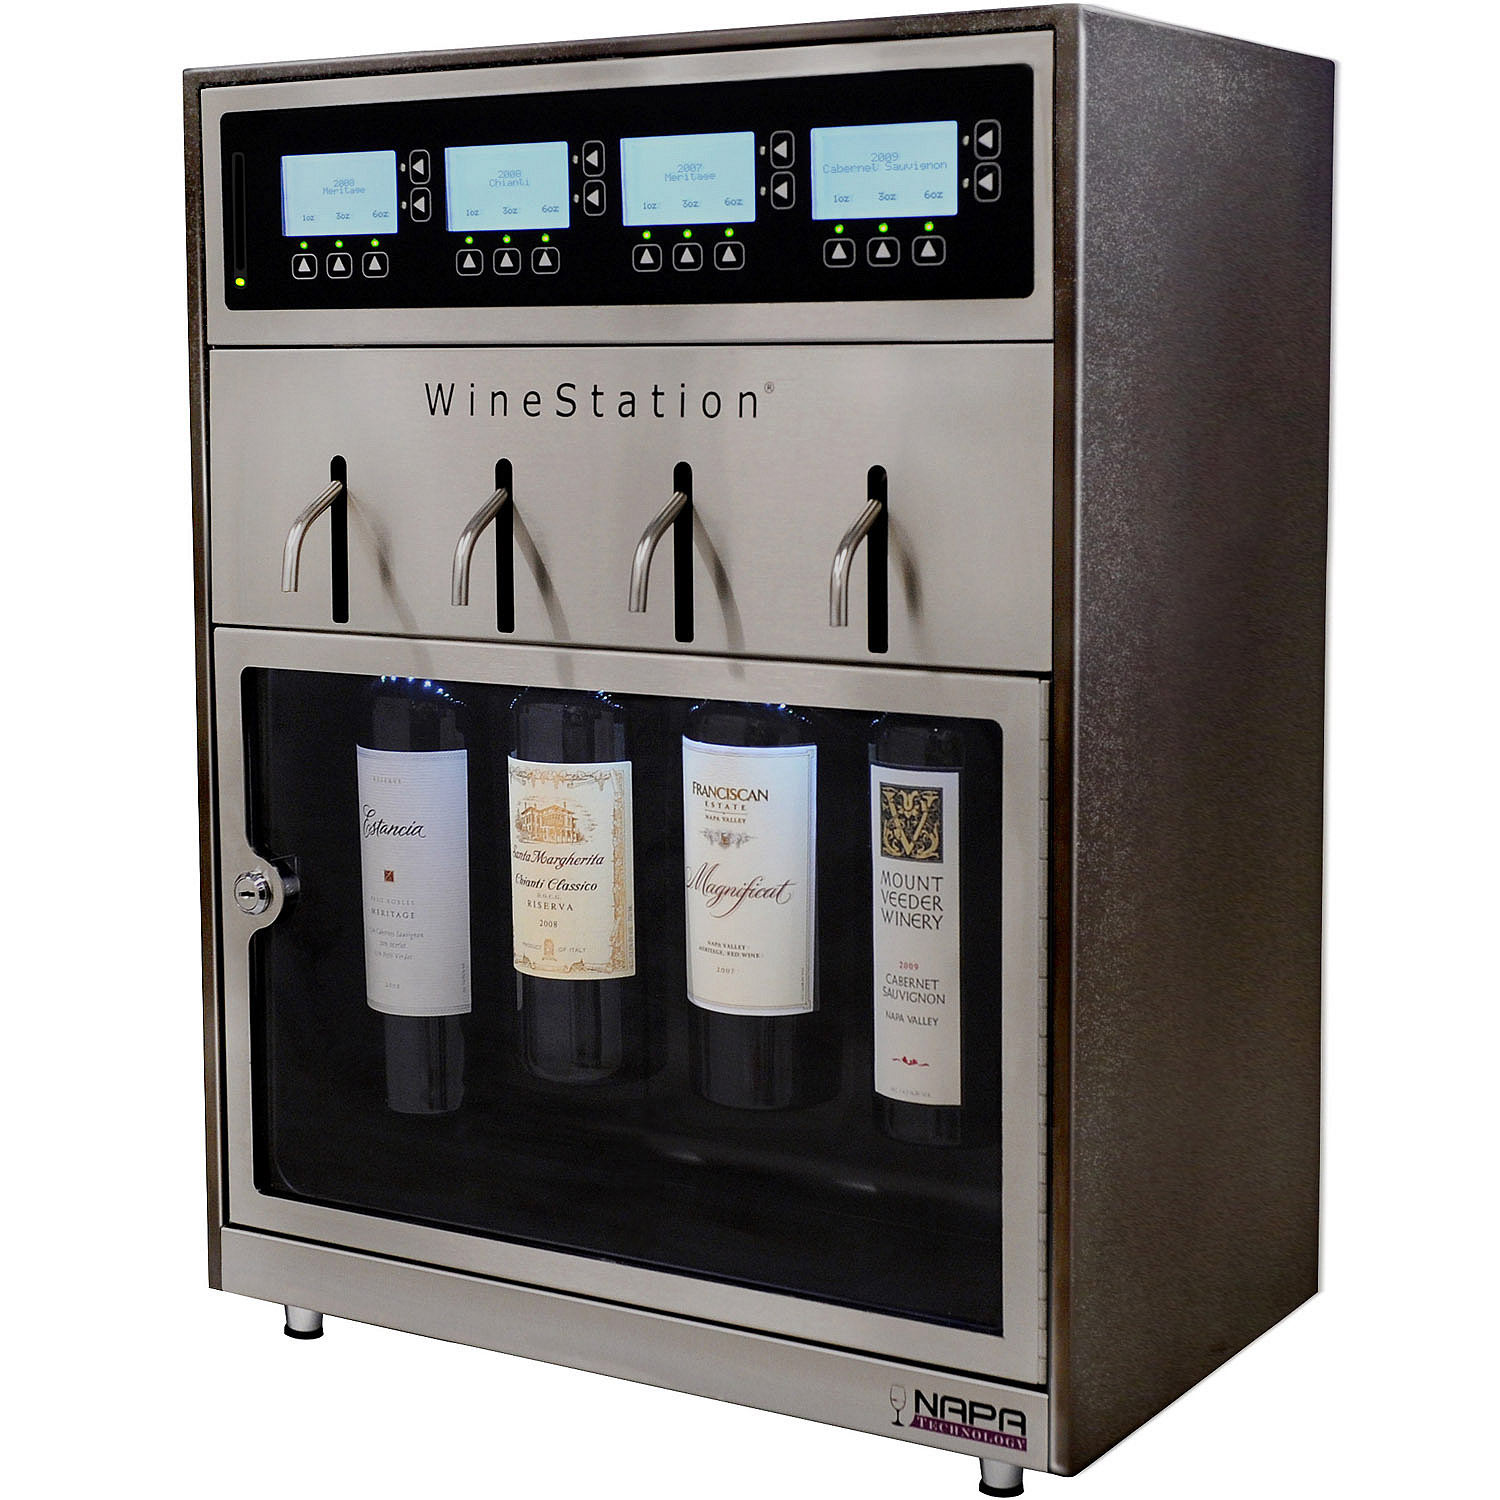 Winestation 4 Bottle Wine Dispensing And Preservation System